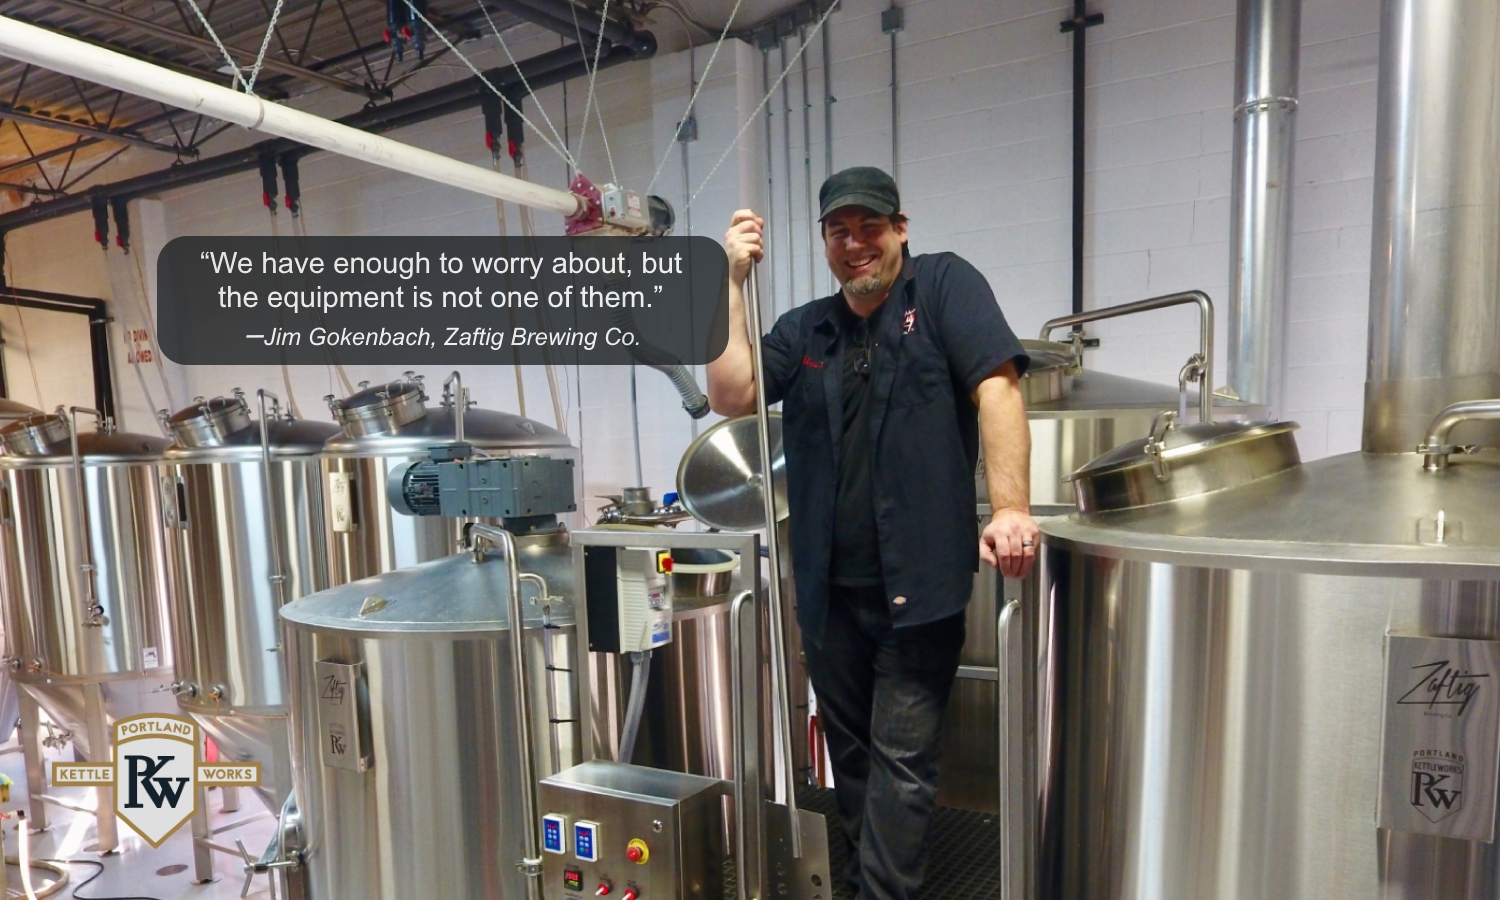 Brewing Equipment at Zaftig Brewery & Client Testimonial